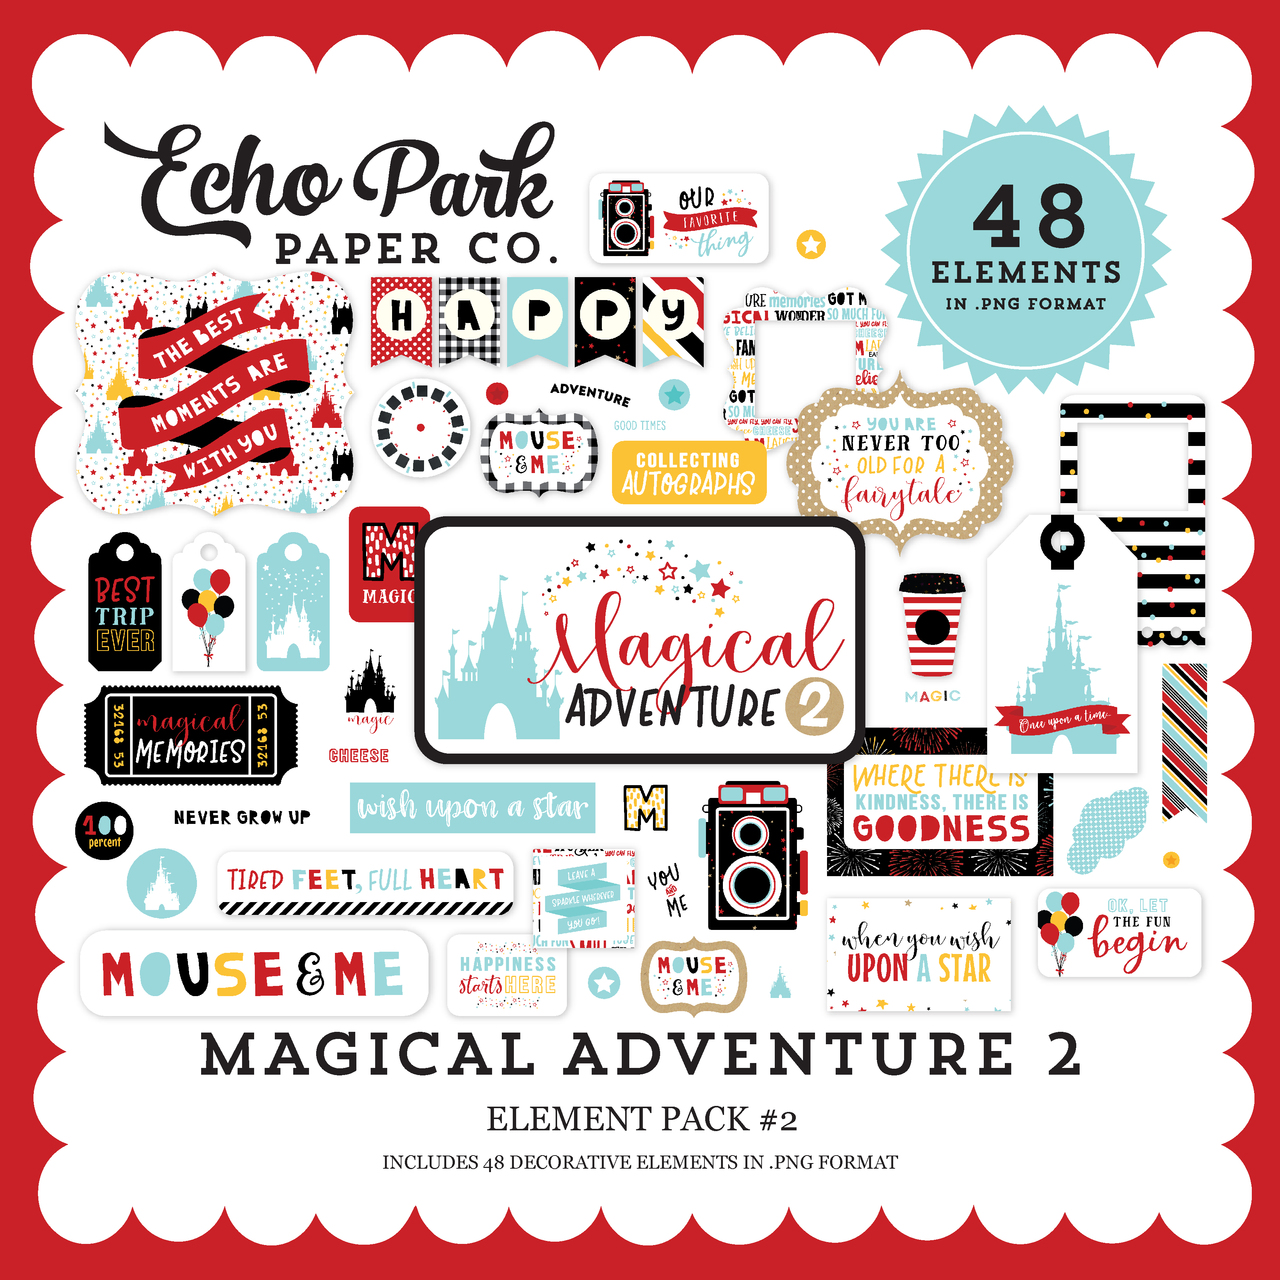 Magical Adventure 2 Element Pack #2